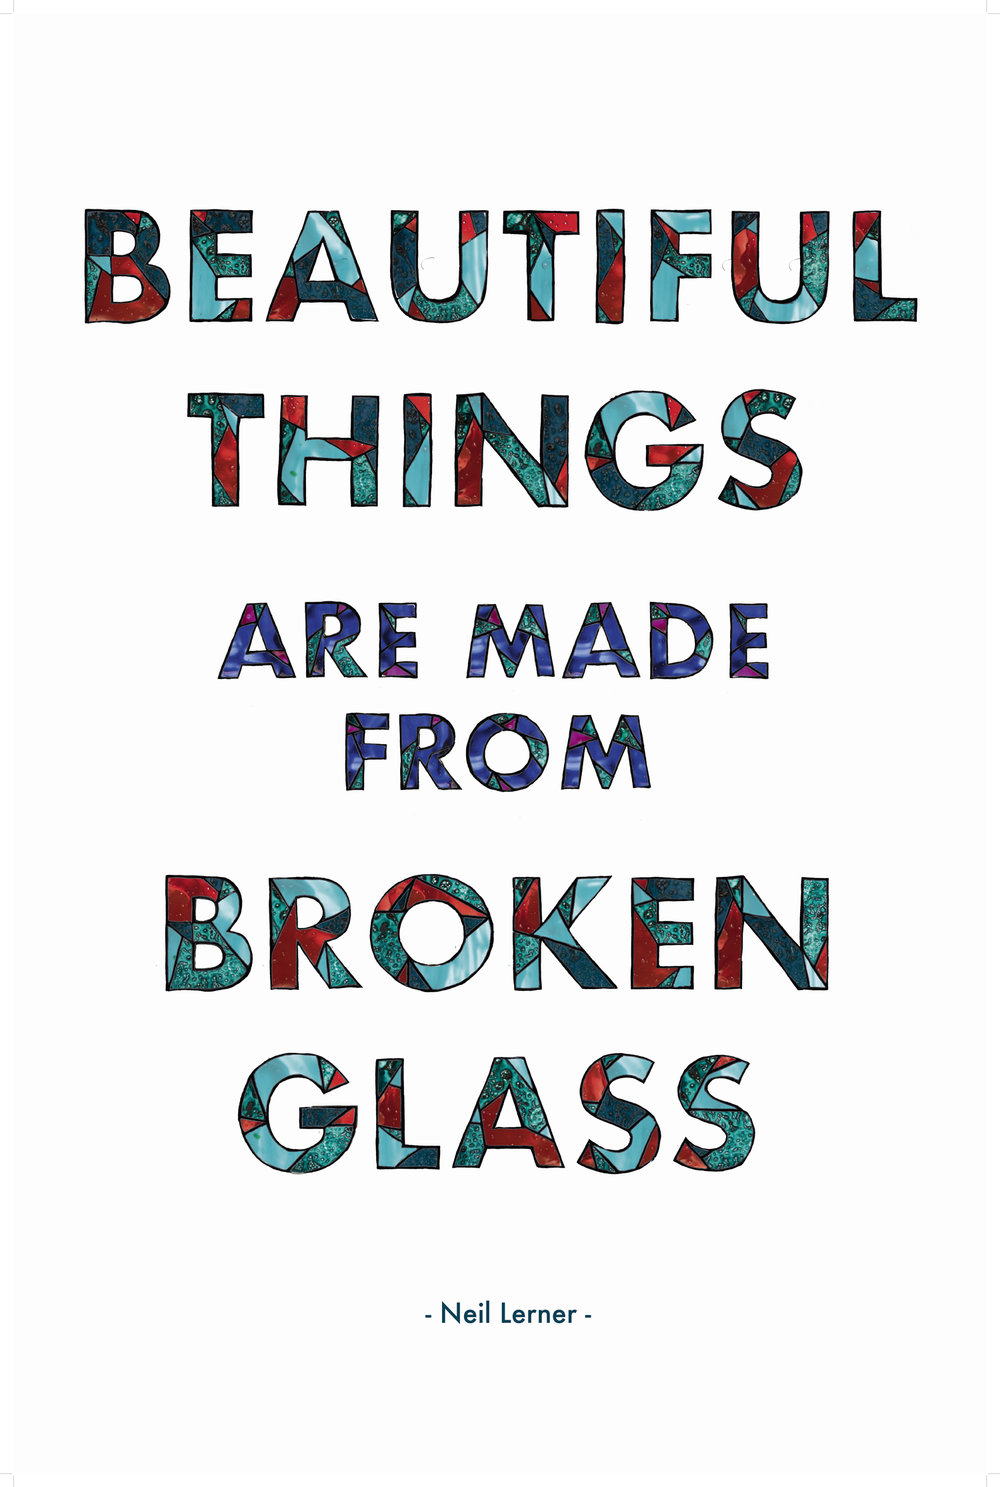 'Beautiful Things Are Made From Broken Glass' poster by Heather Haughn